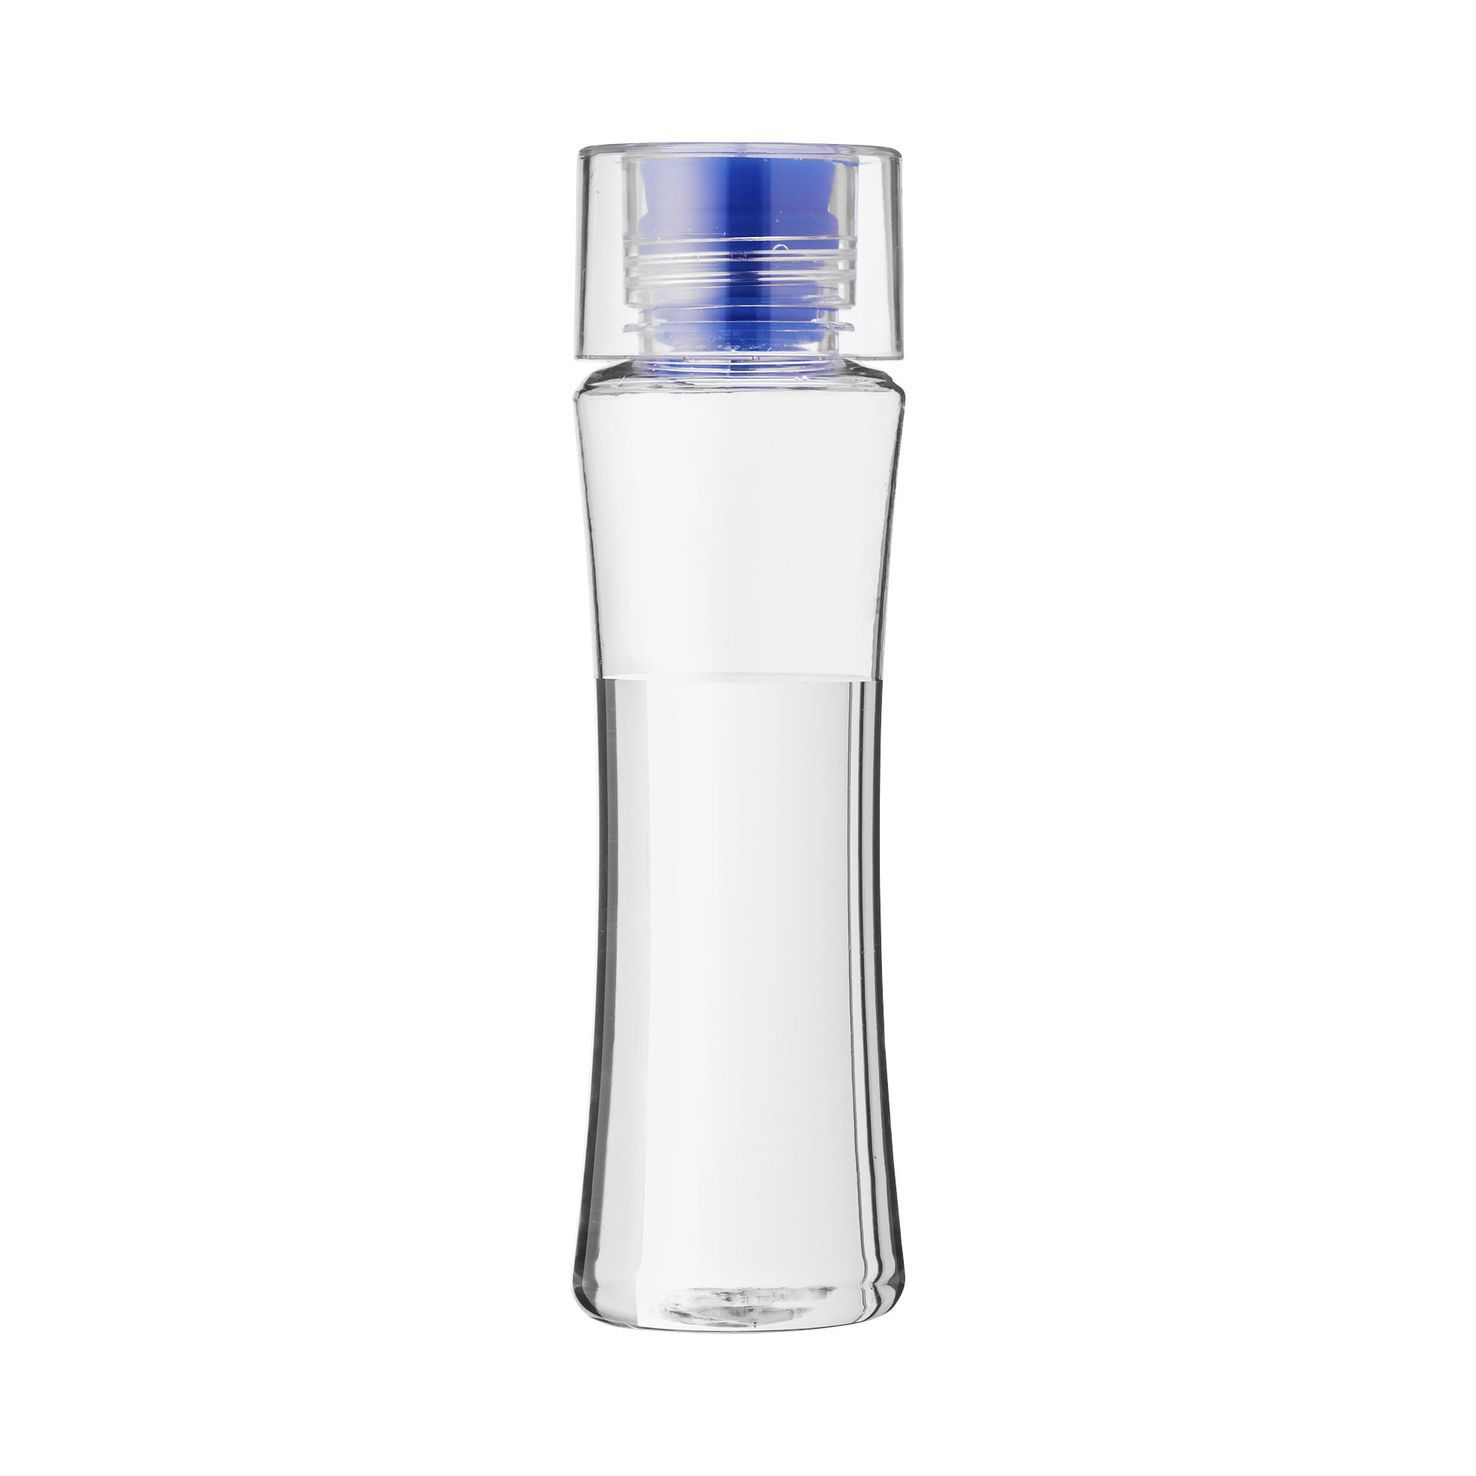 Transparant / blauw Waterfles | Enkelwandig | 650 ml